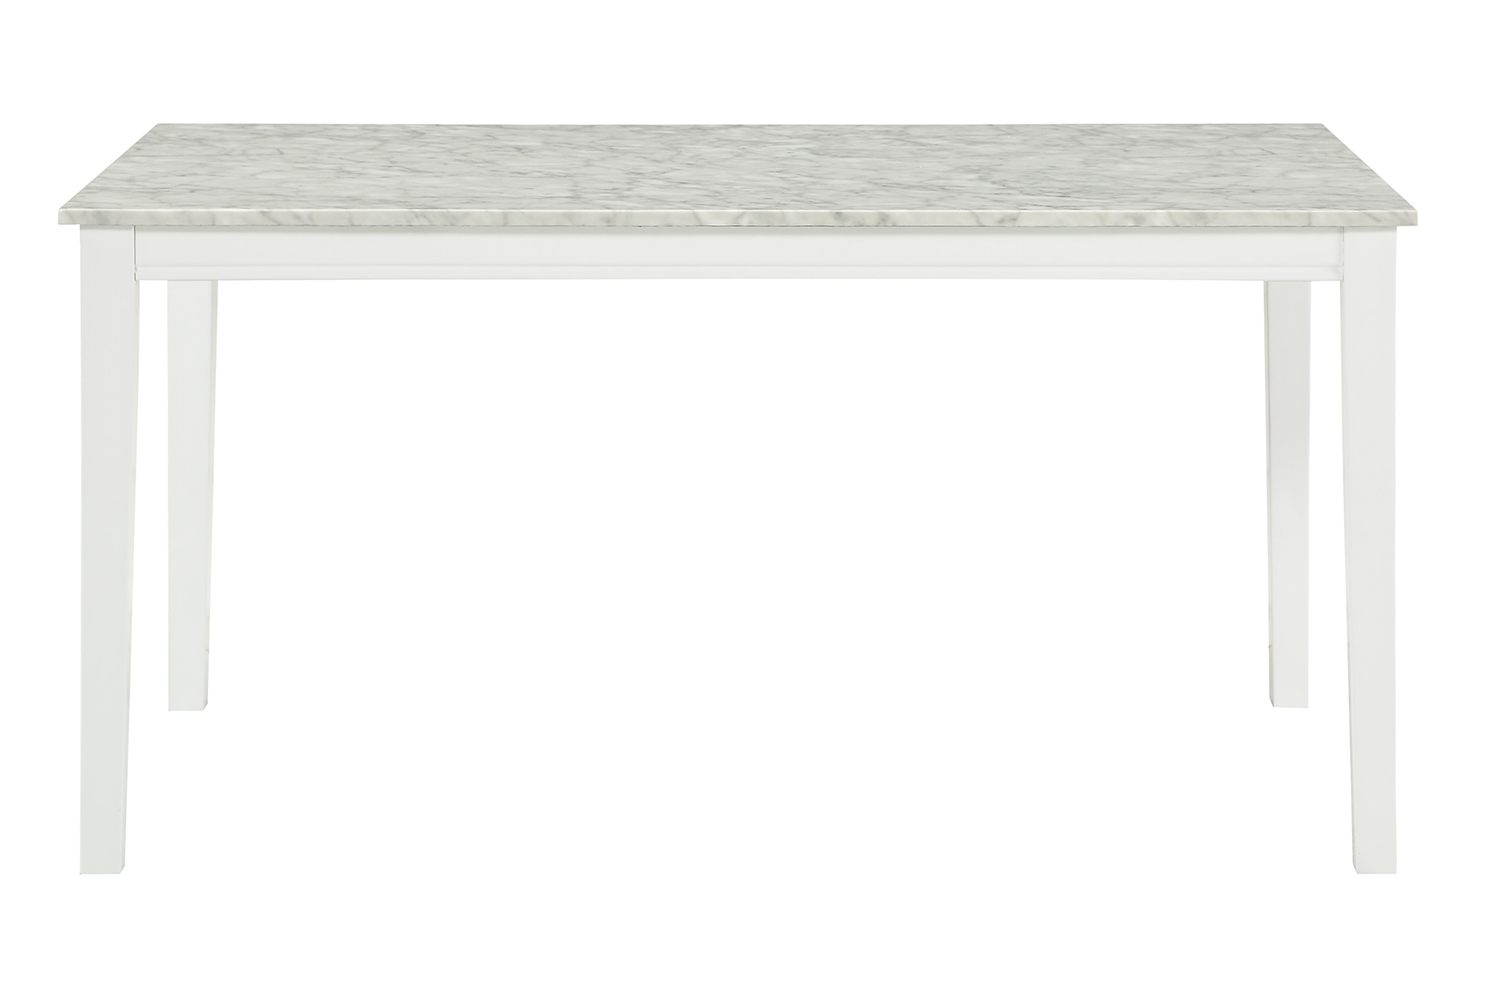 Homelegance Nadalia Dining Table - Faux Marble Top - White